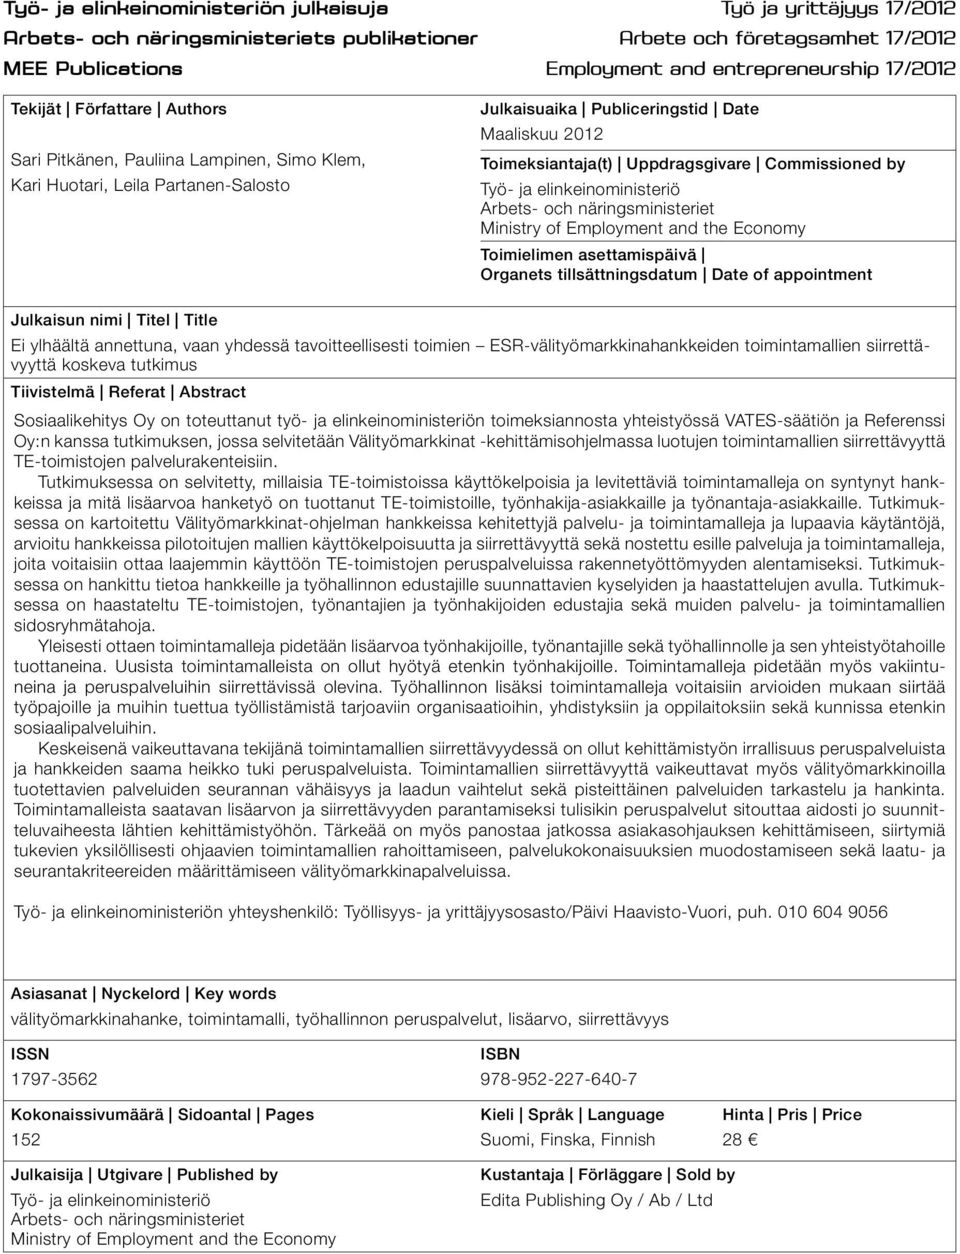 Commissioned by Työ- ja elinkeinoministeriö Arbets- och näringsministeriet Ministry of Employment and the Economy Toimielimen asettamispäivä Organets tillsättningsdatum Date of appointment Julkaisun